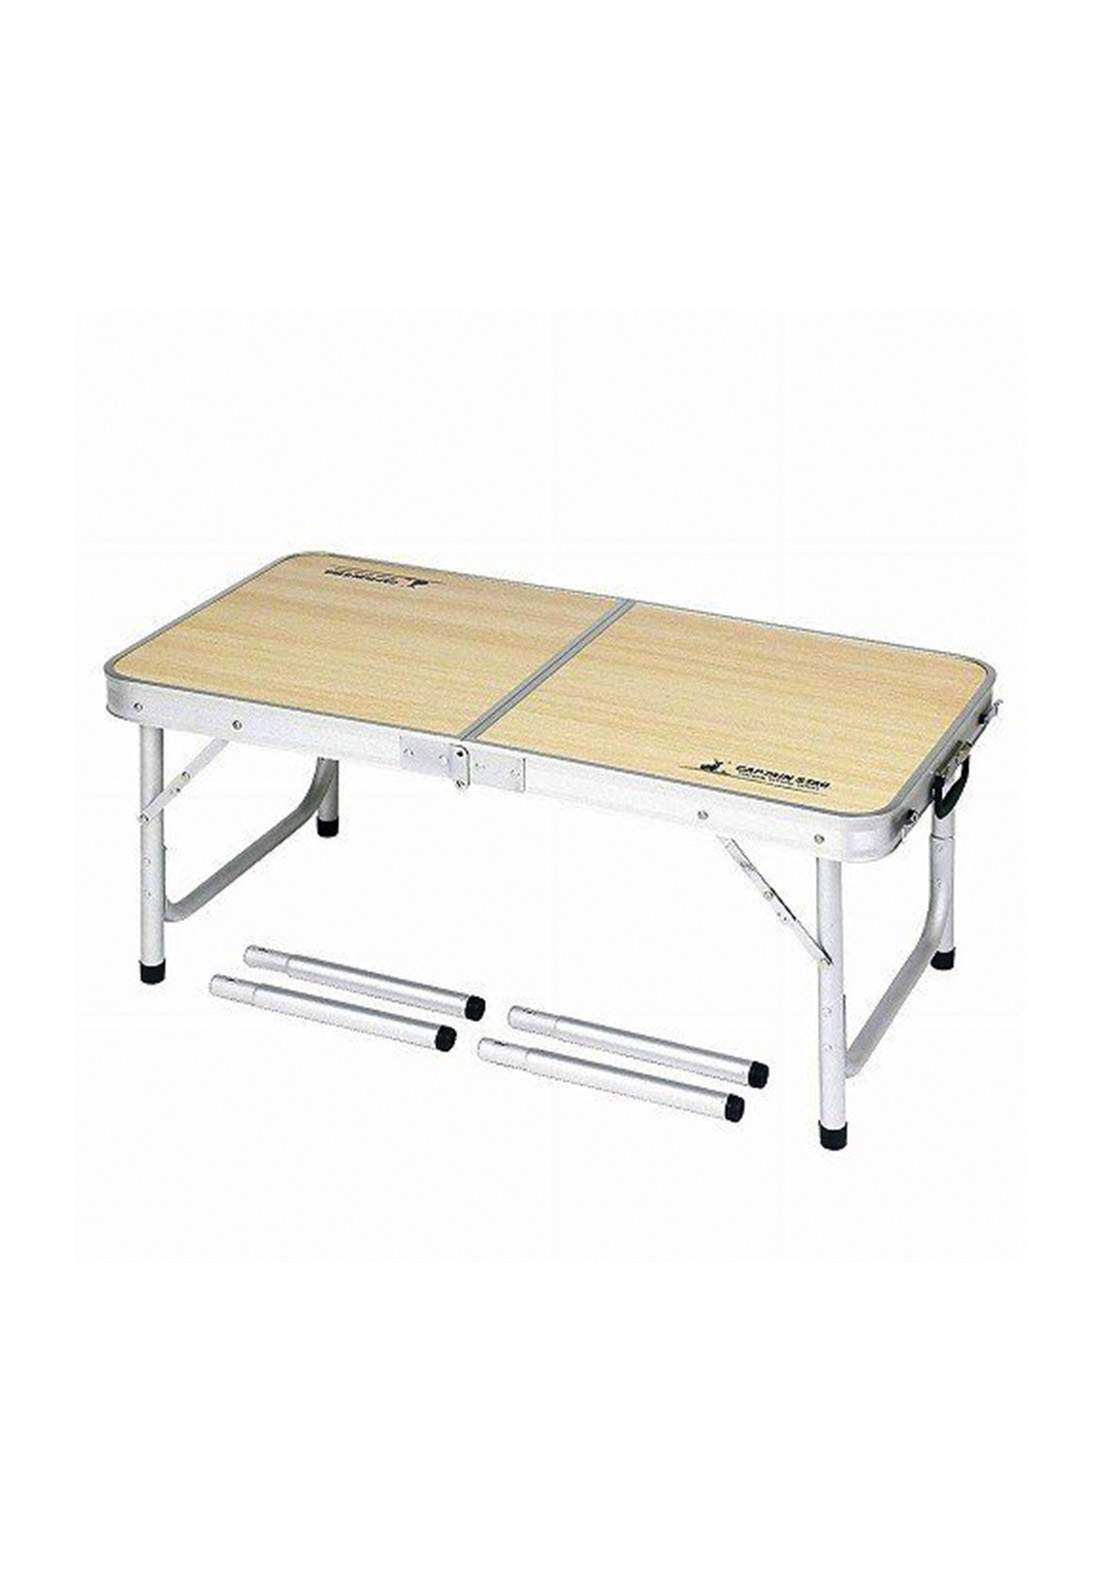 Captain Stag UC-0529 Trunk Table With Just-Sized Leisure Seats طاولة متعددة الأستخدام